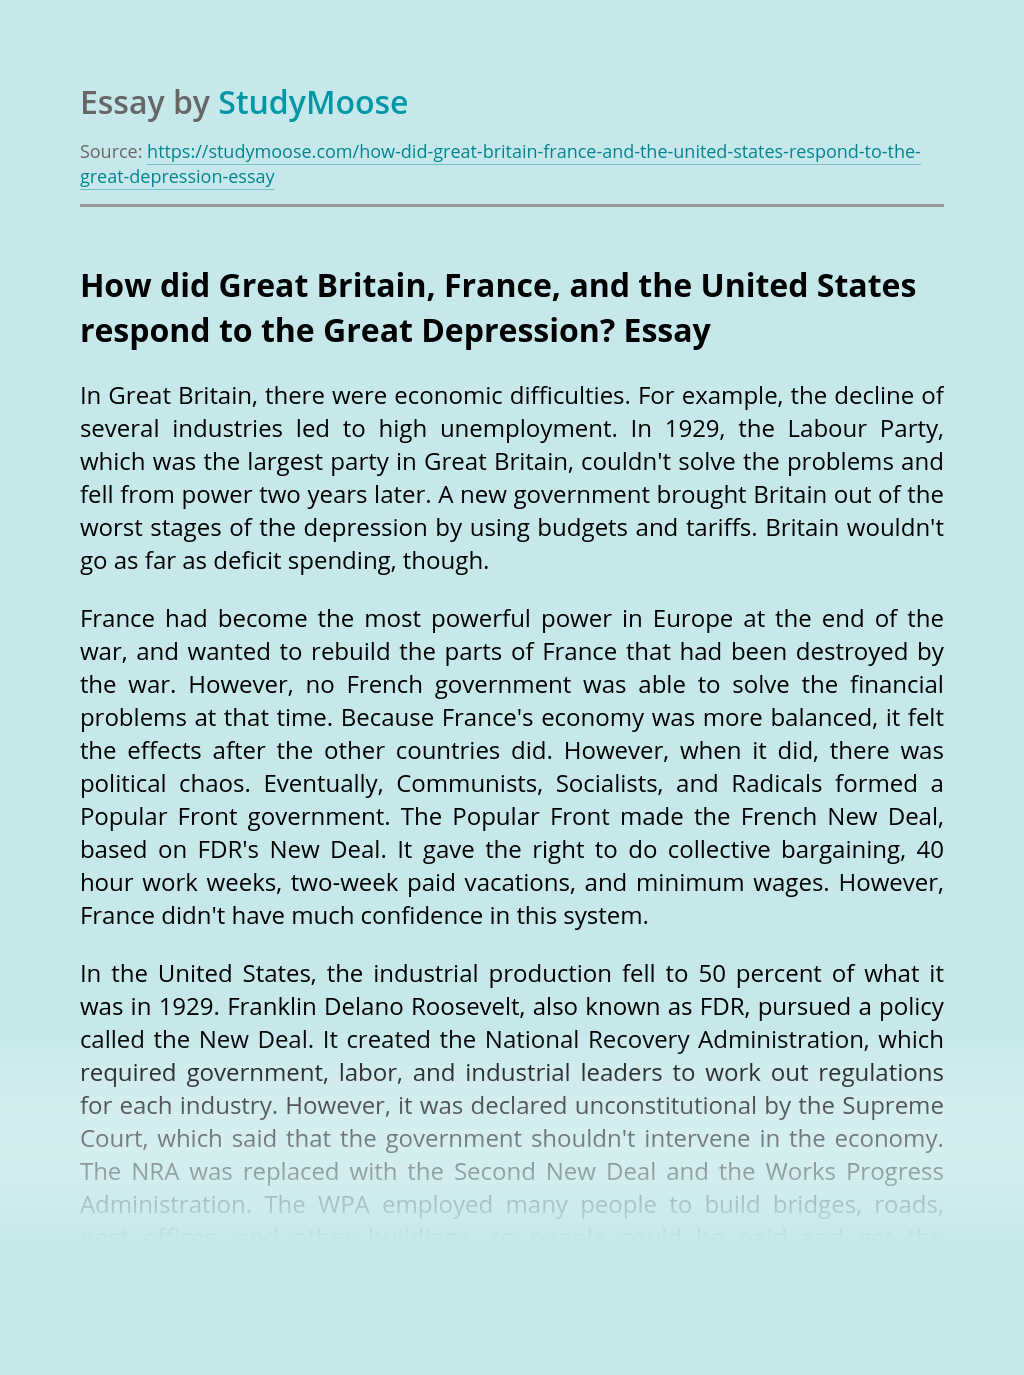 How did Great Britain, France, and the United States respond to the Great Depression?